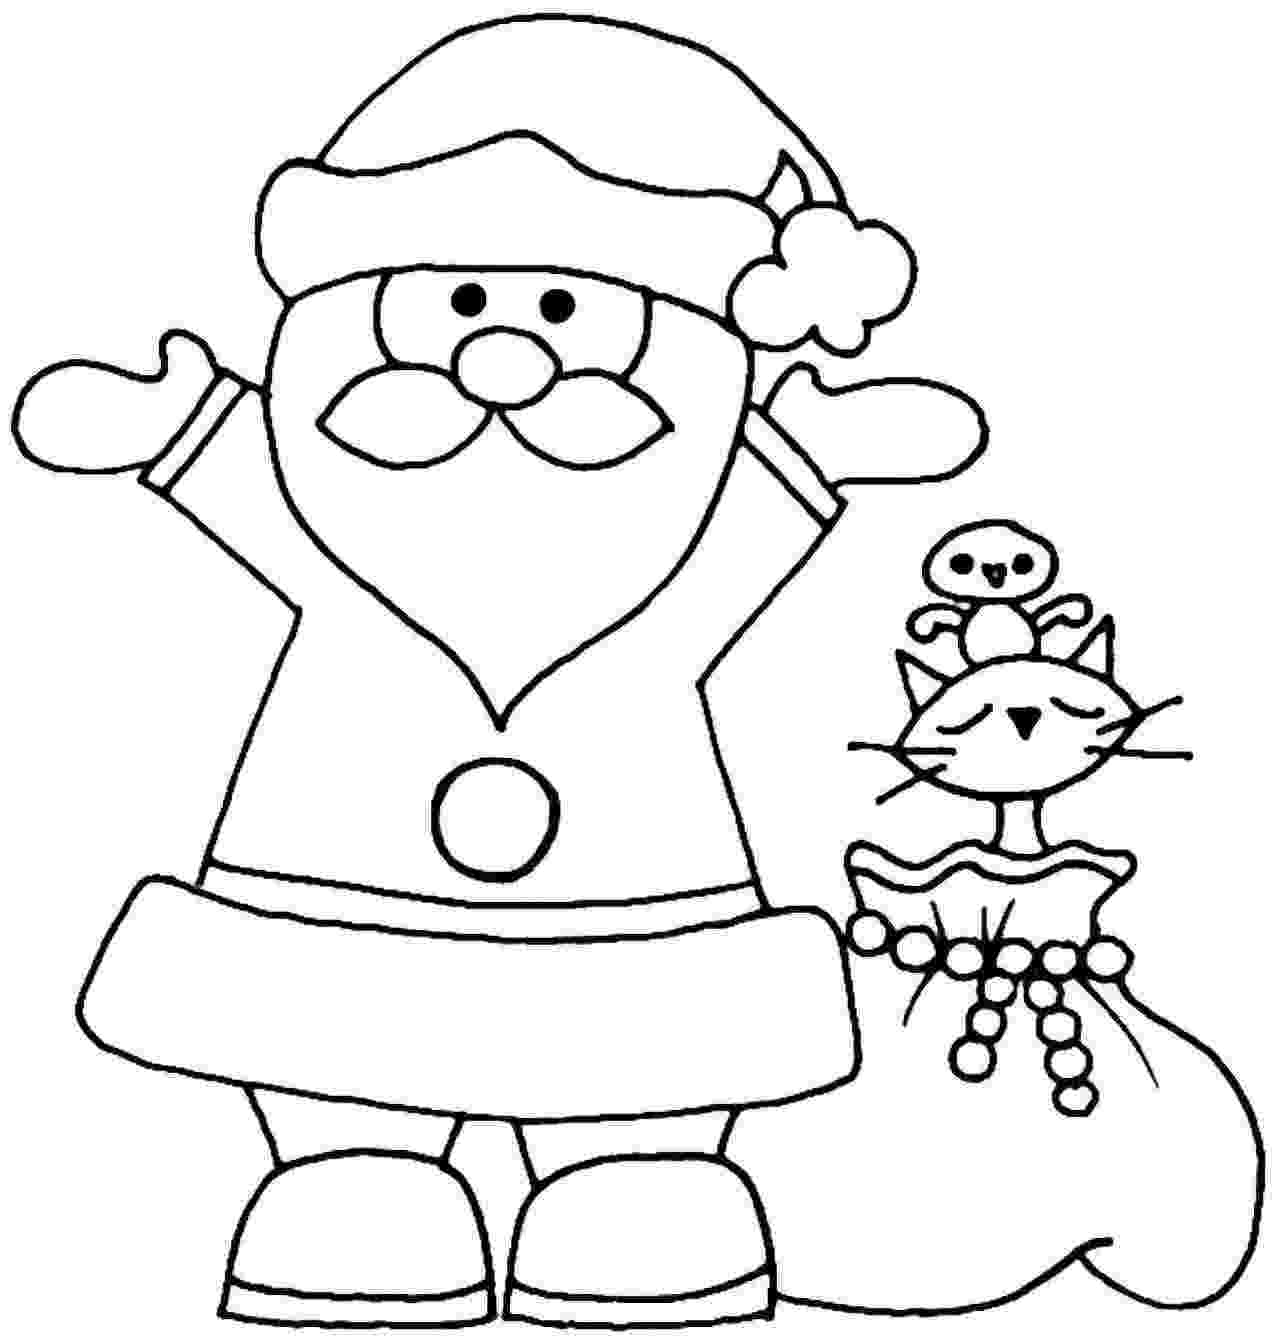 christmas colouring pages for preschoolers christmas wreath coloring pages coloringpages1001com pages colouring christmas preschoolers for